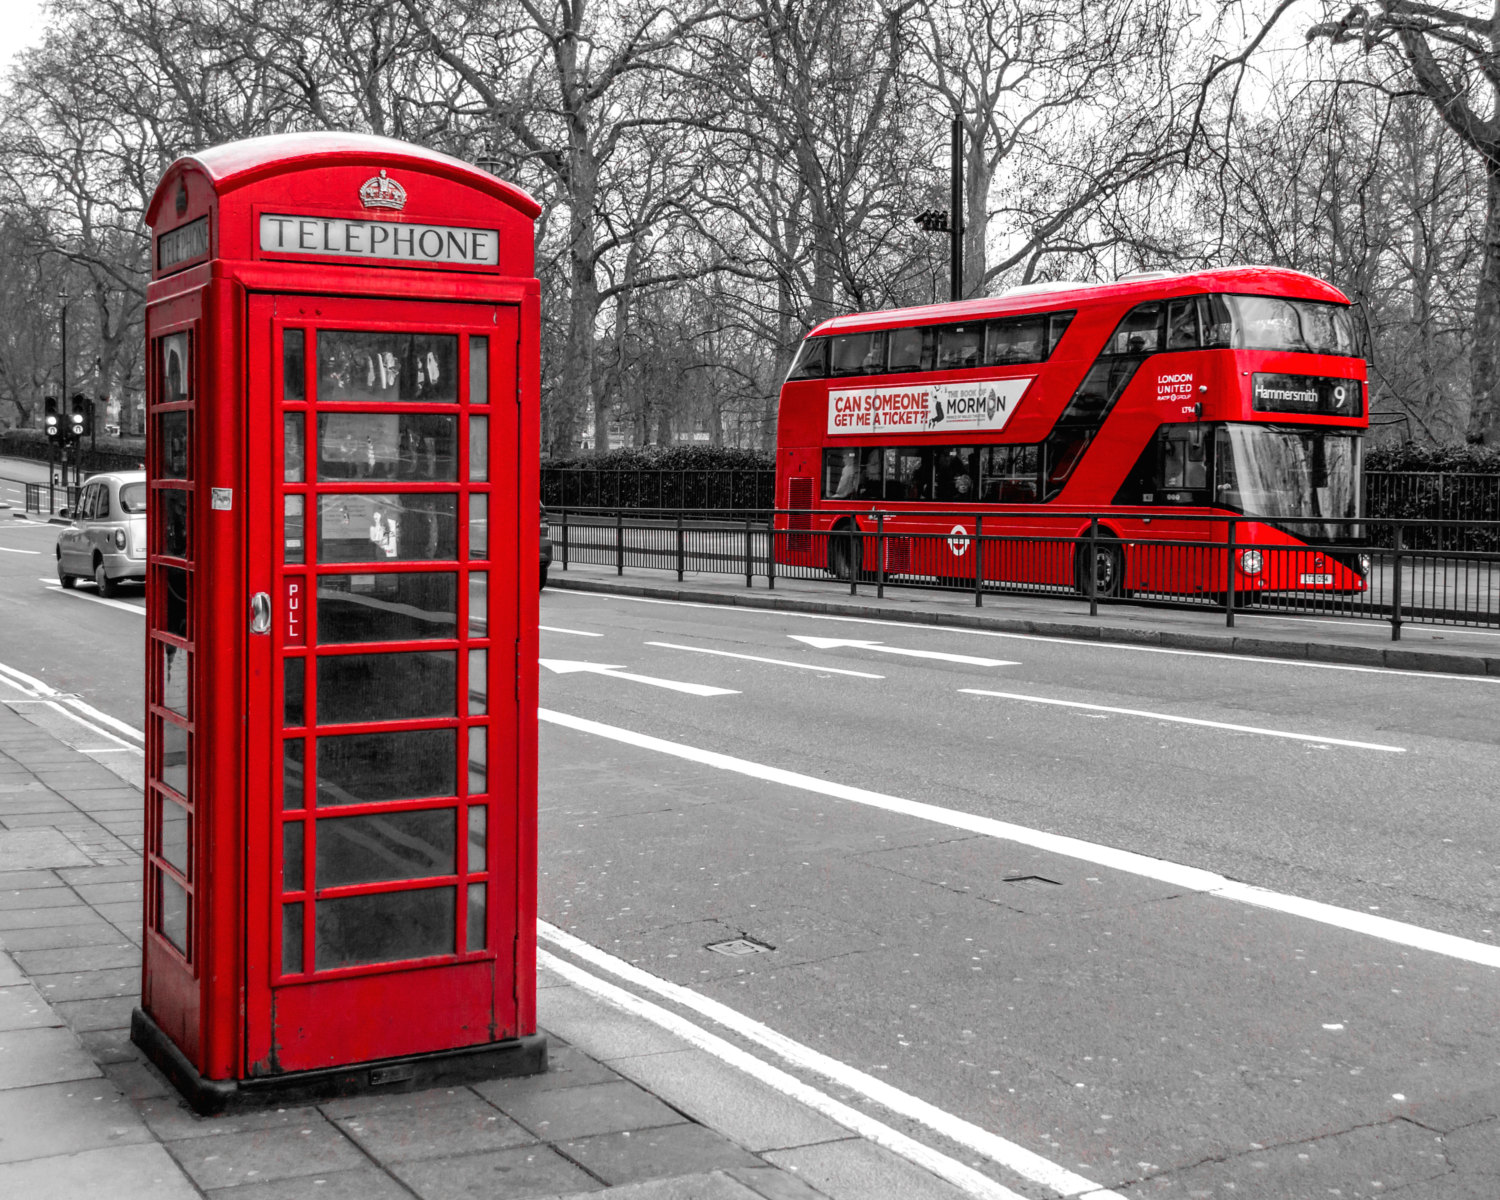 Phone Booth and London Bus